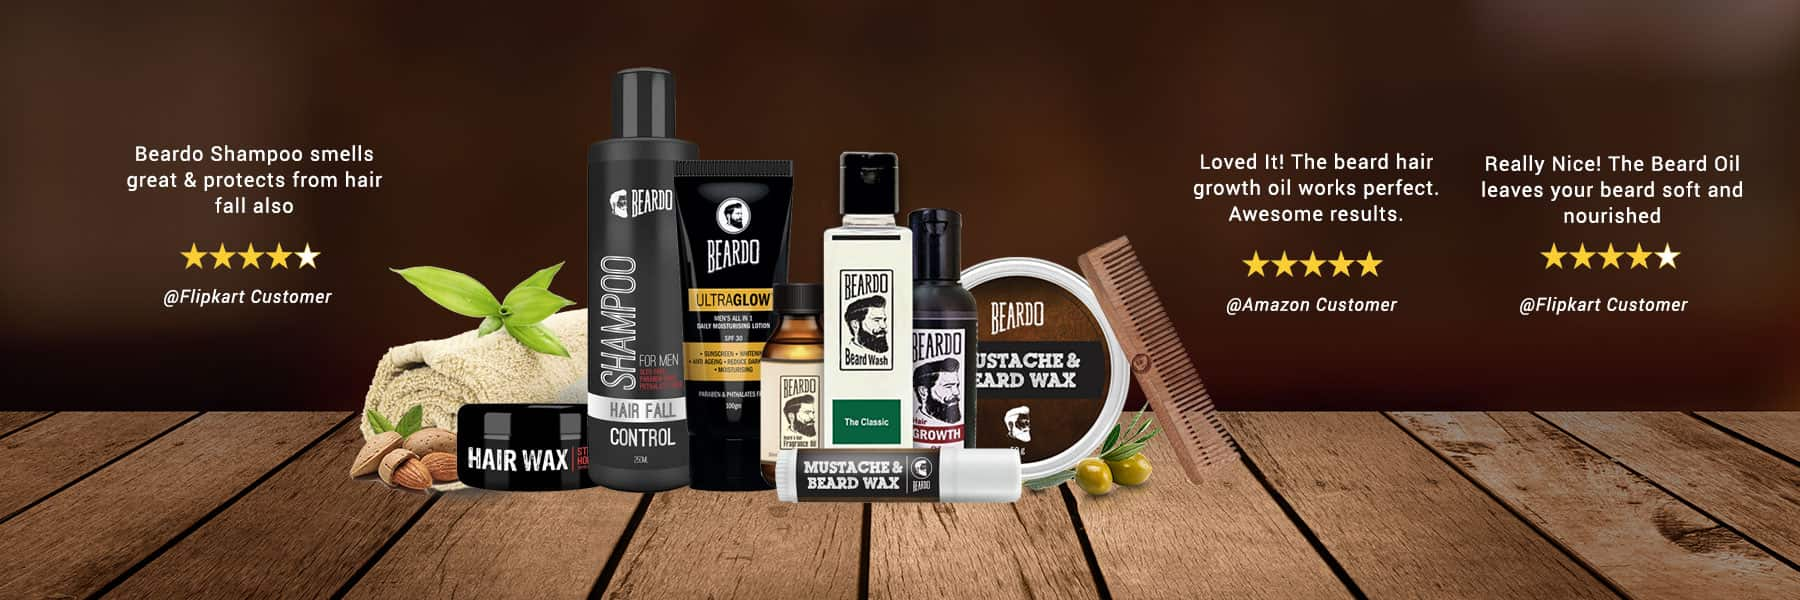 Marico To Acquire 45% Stake In Male Grooming Products